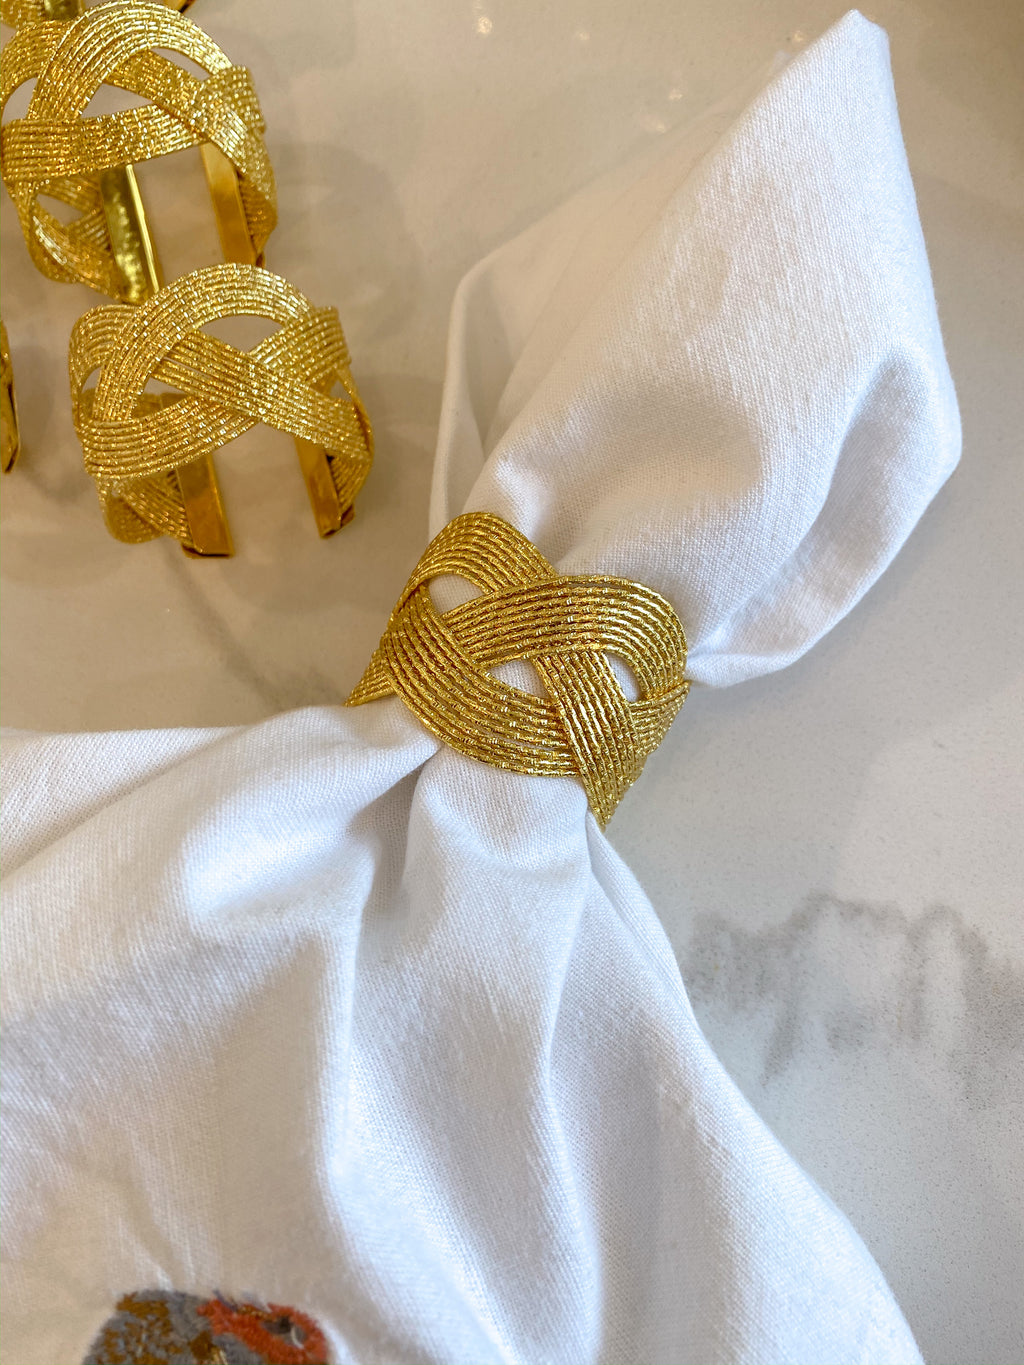 Set of 6 Gold Braid Napkin Rings-Inspire Me! Home Decor